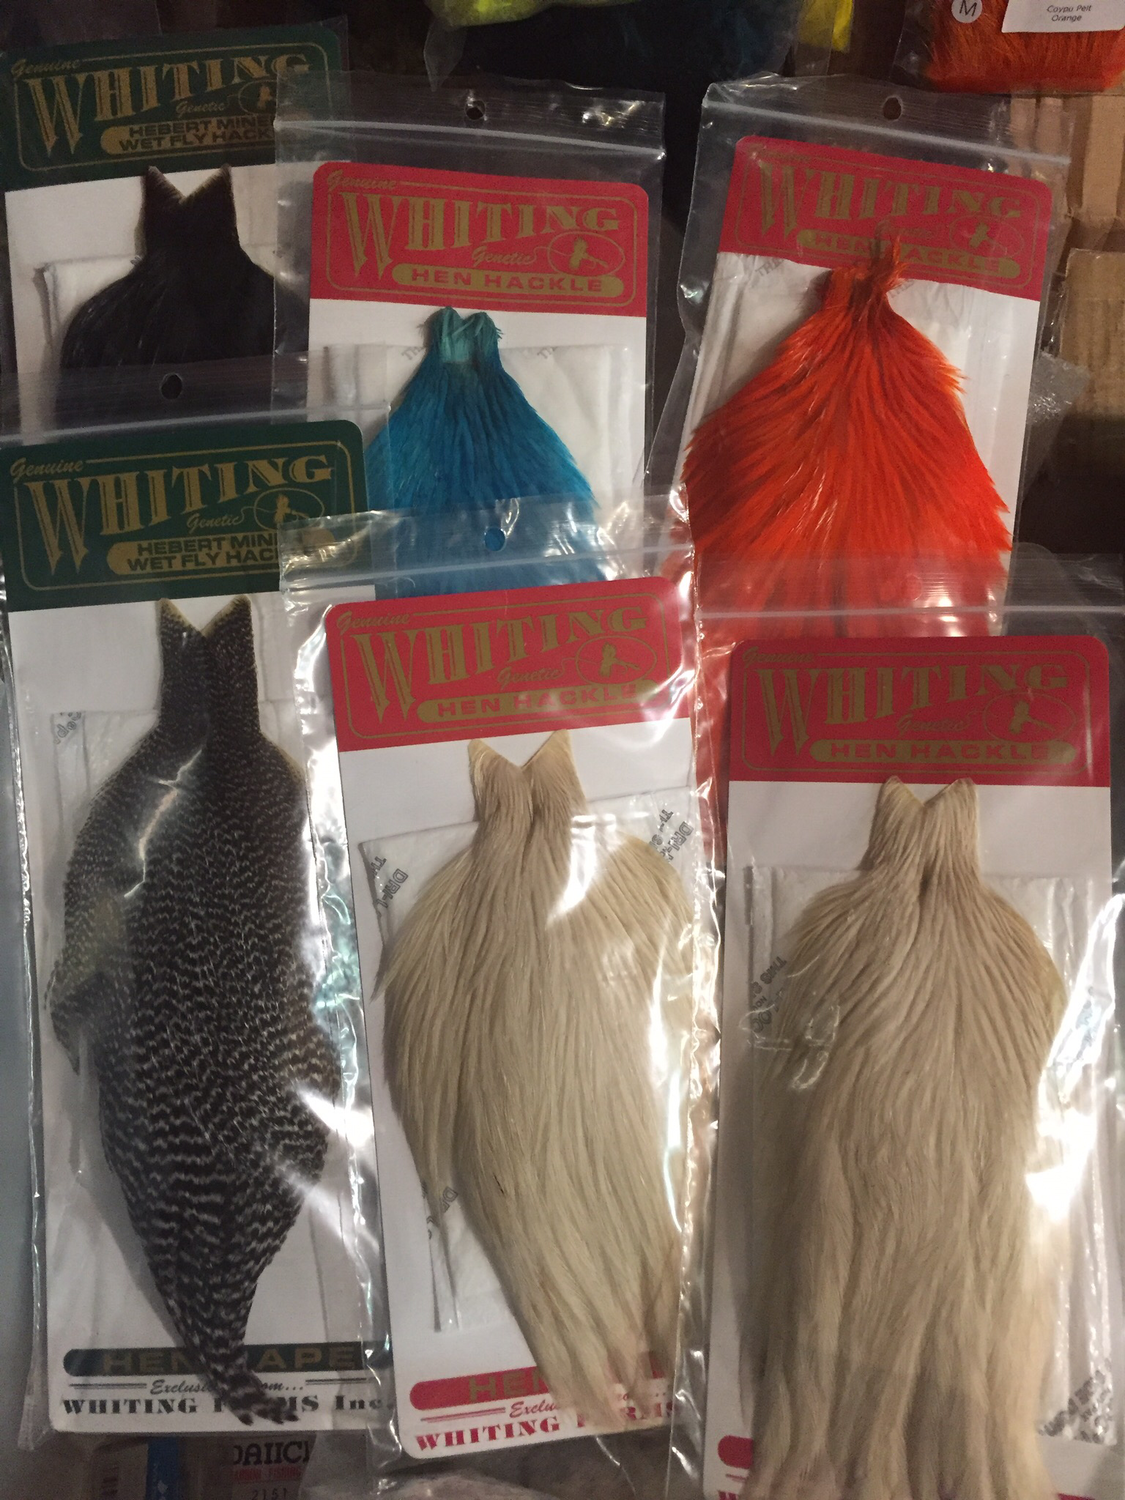 Six Whiting Hen Capes